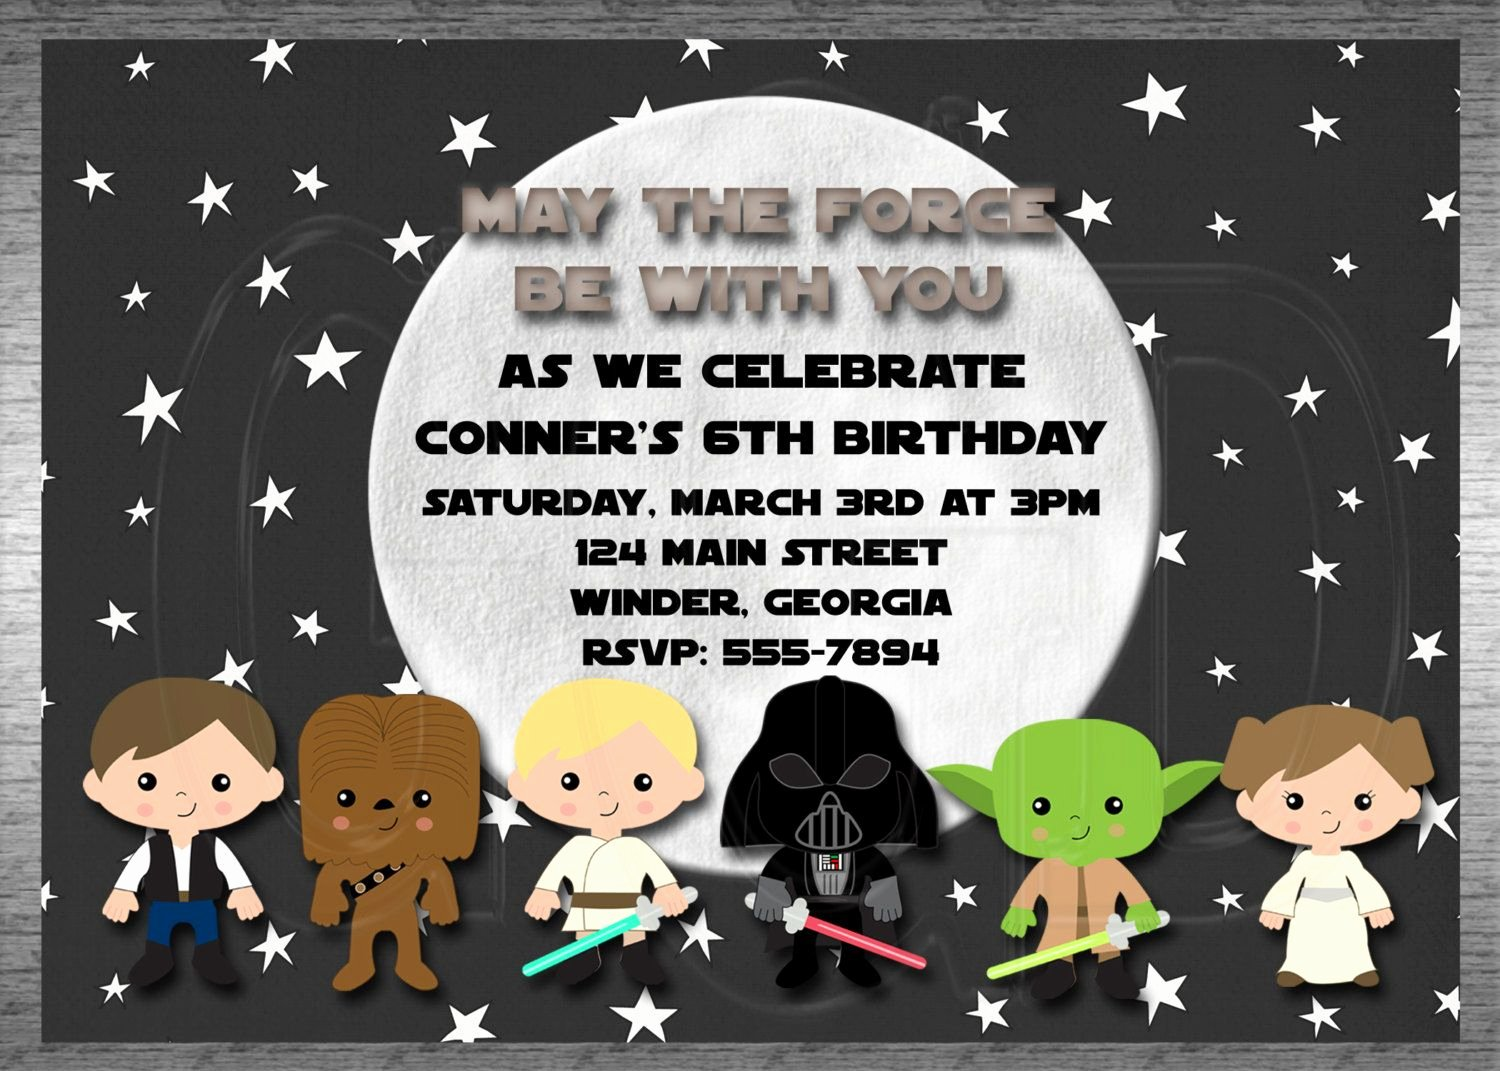 Star Wars Invitations Printable Beautiful Star Wars Invitation Inspired Printable Digital File $12